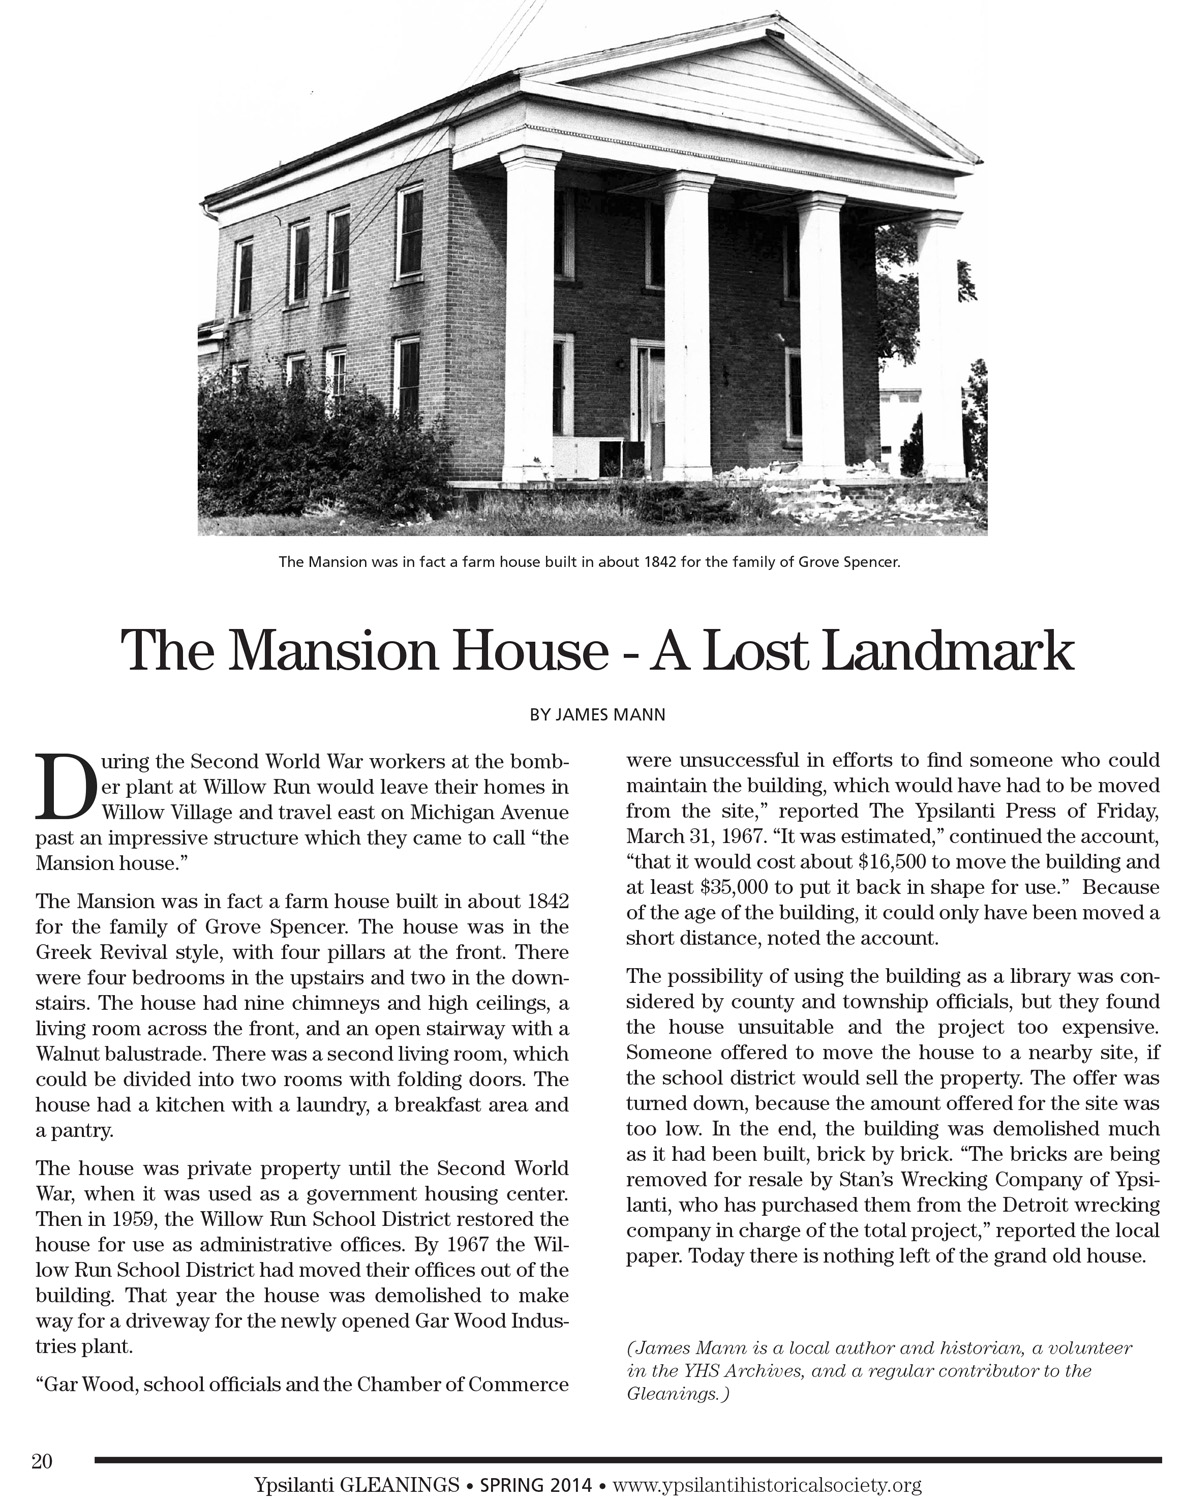 The Mansion House - A Lost Landmark image